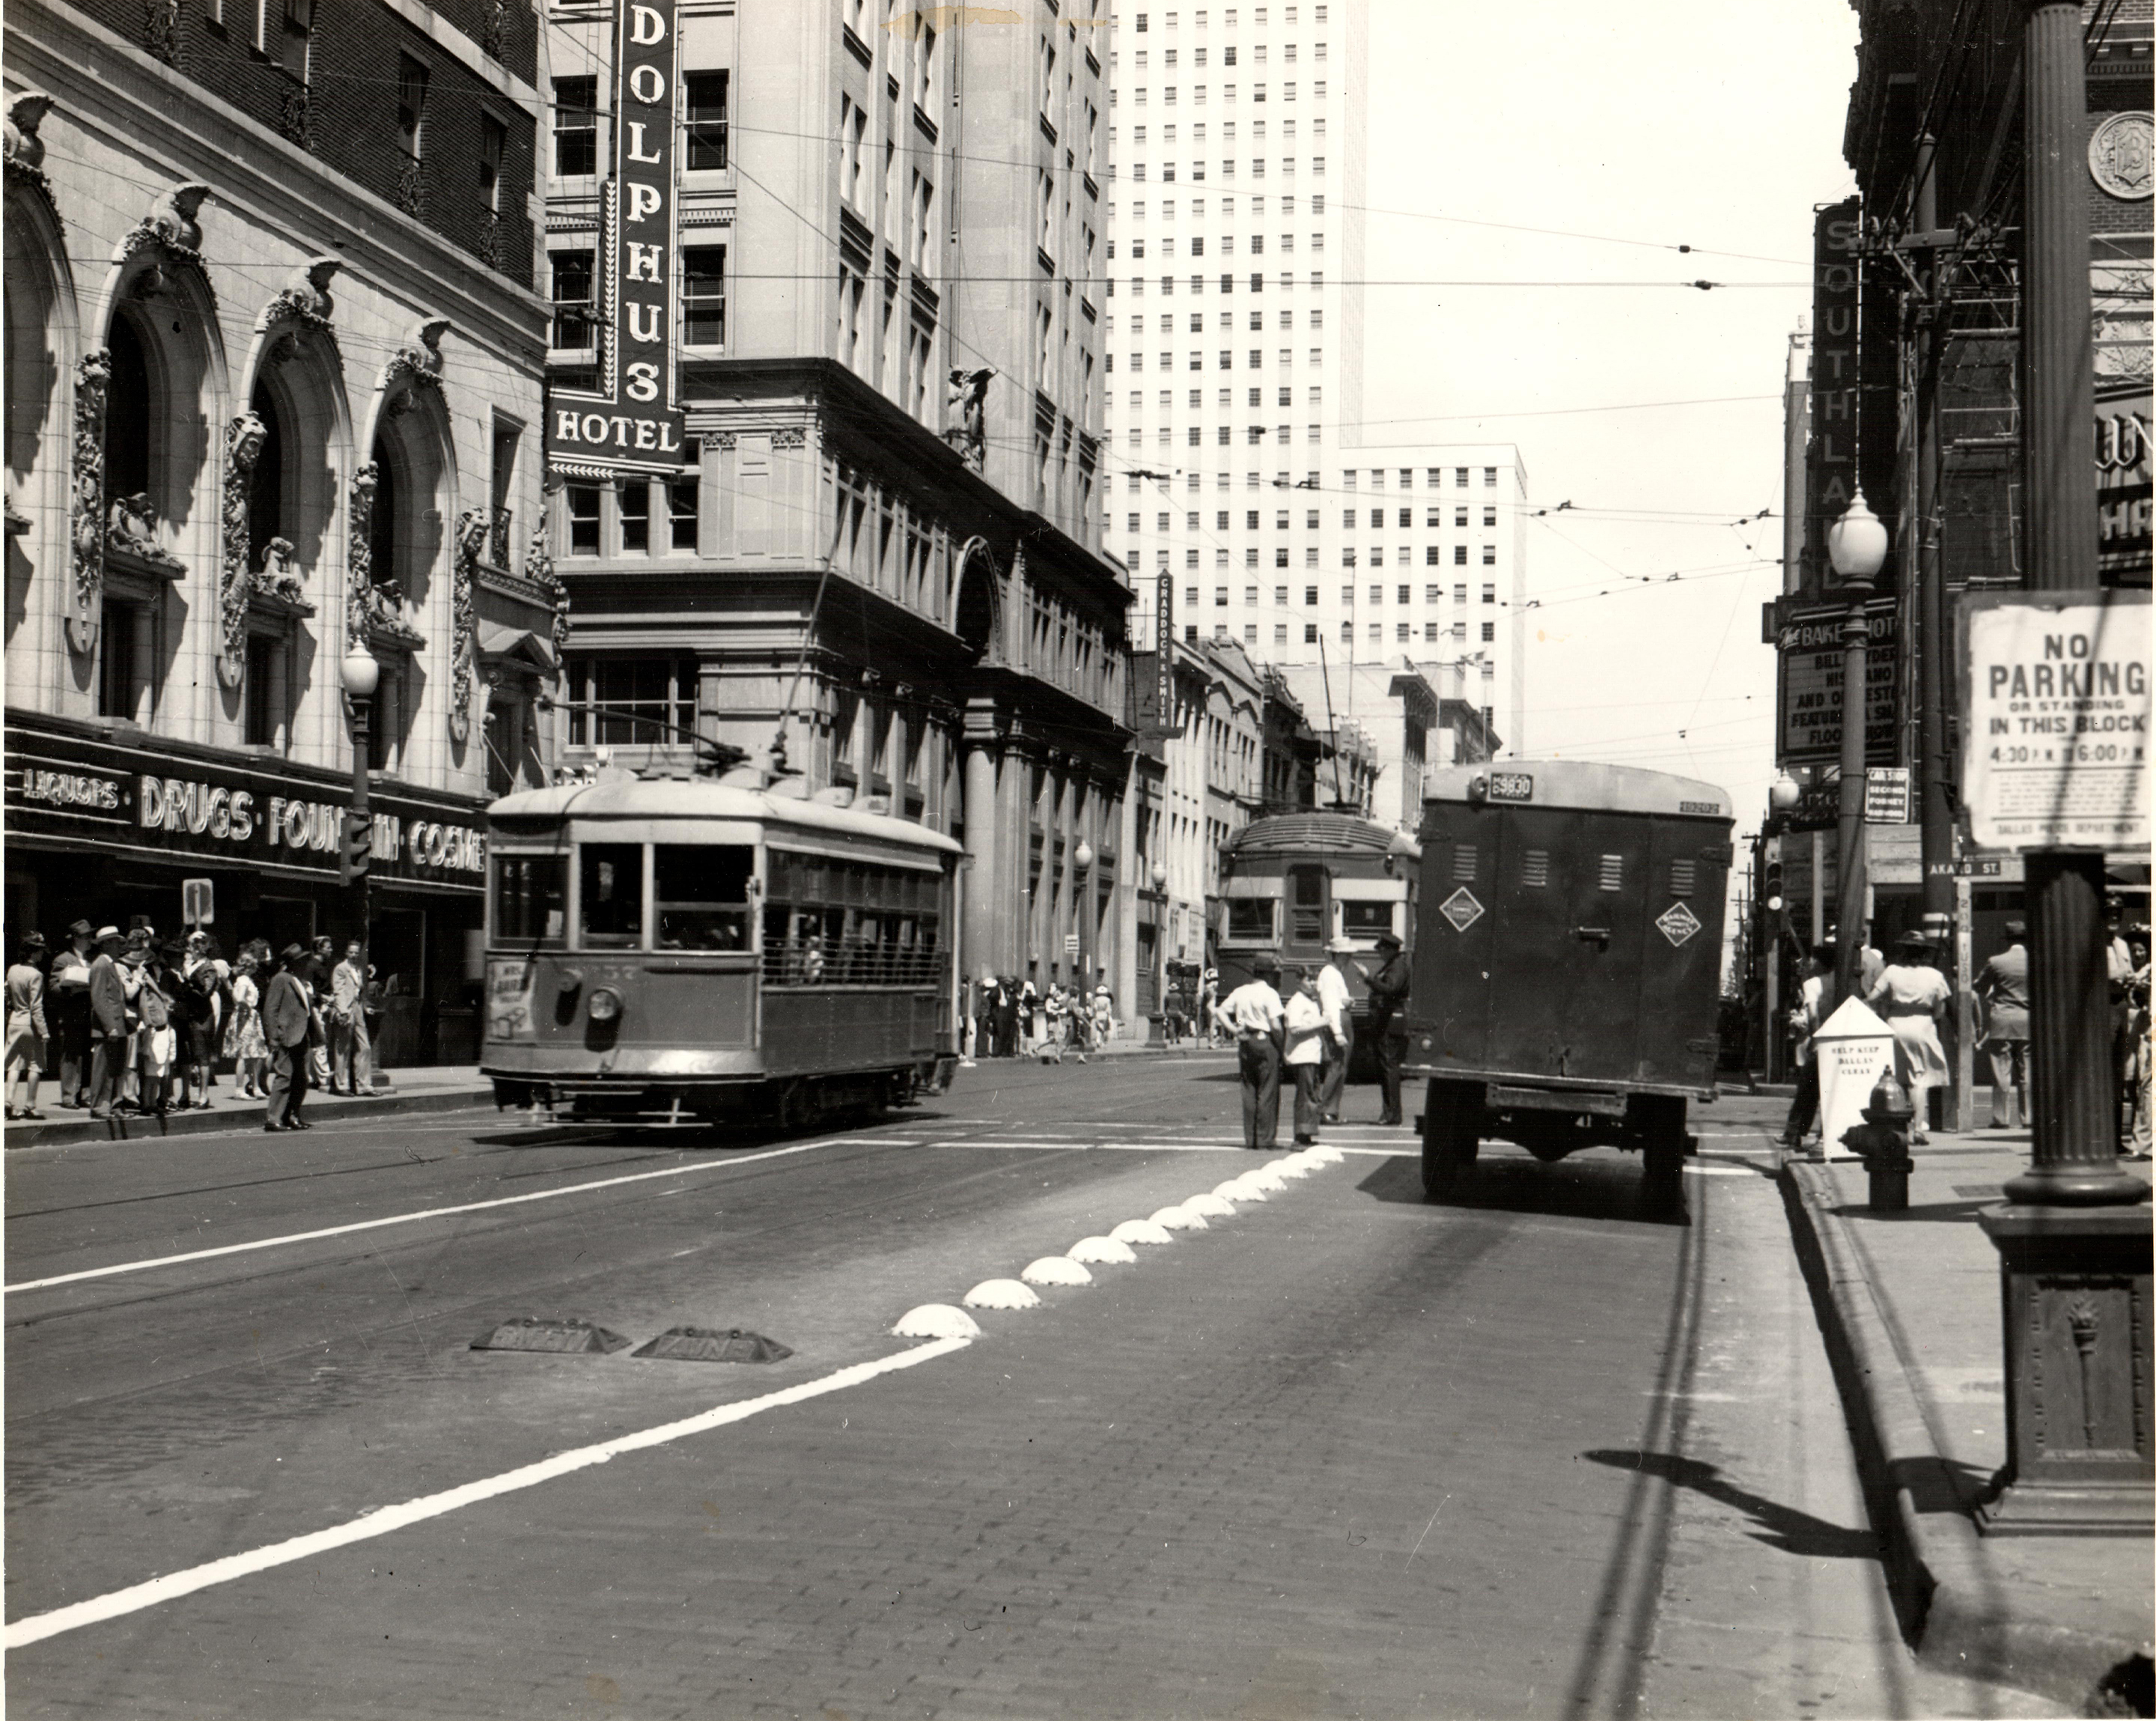 From the past, trolley cars on Commerce Street